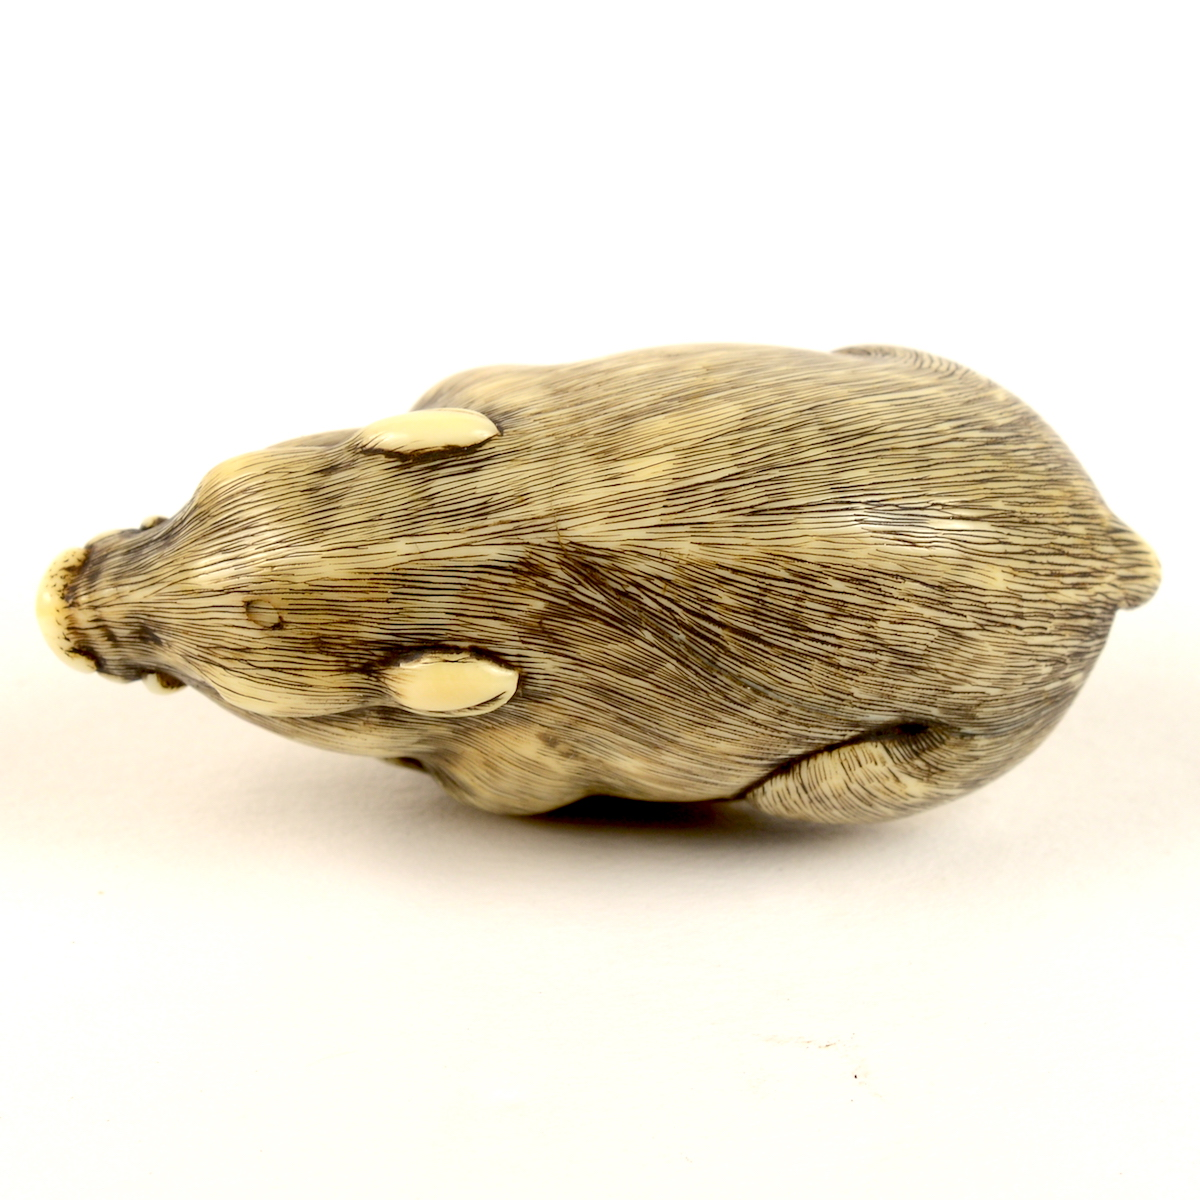 Ivory boar netsuke bird's eye